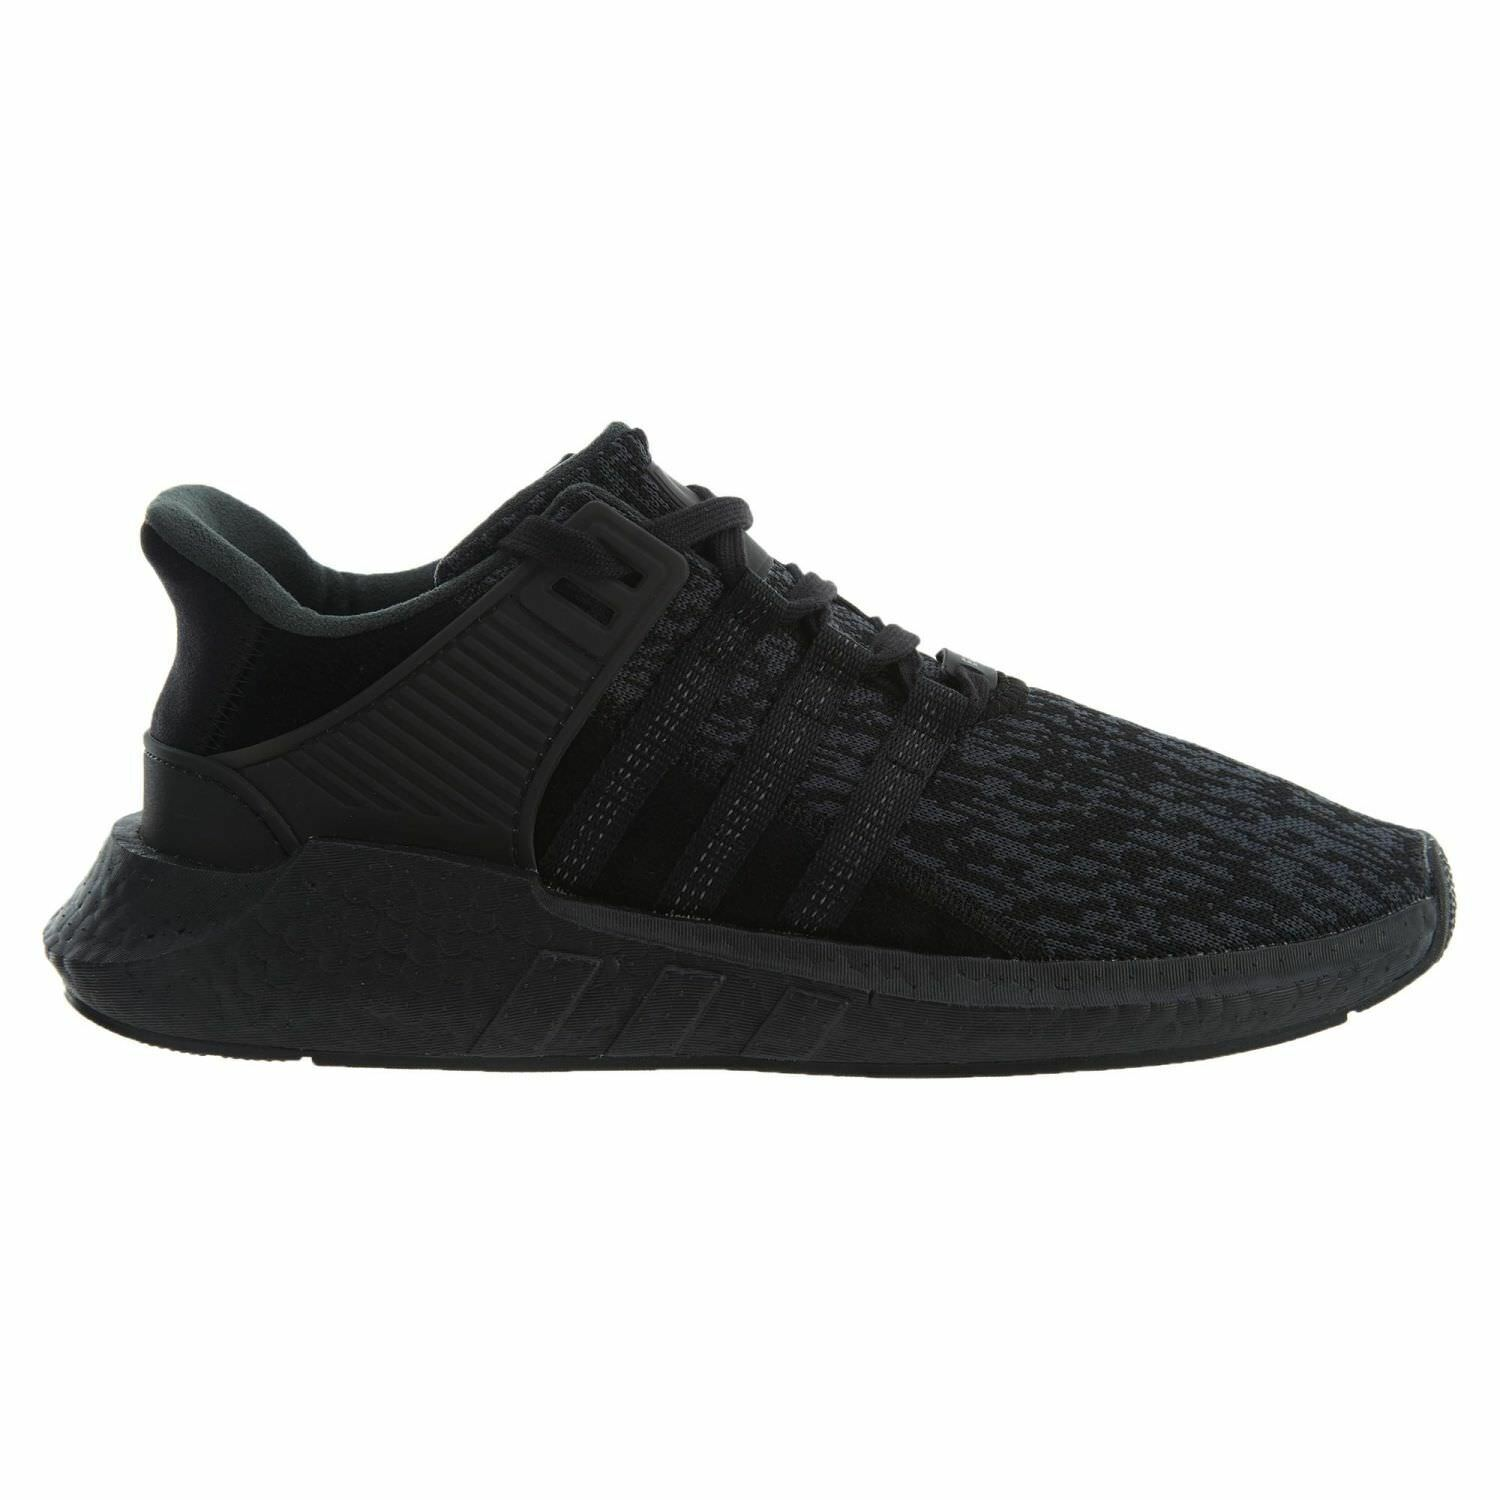 Adidas EQT Support 93/17 Mens BY9512 Black Knit Boost Running Shoes Comfortable